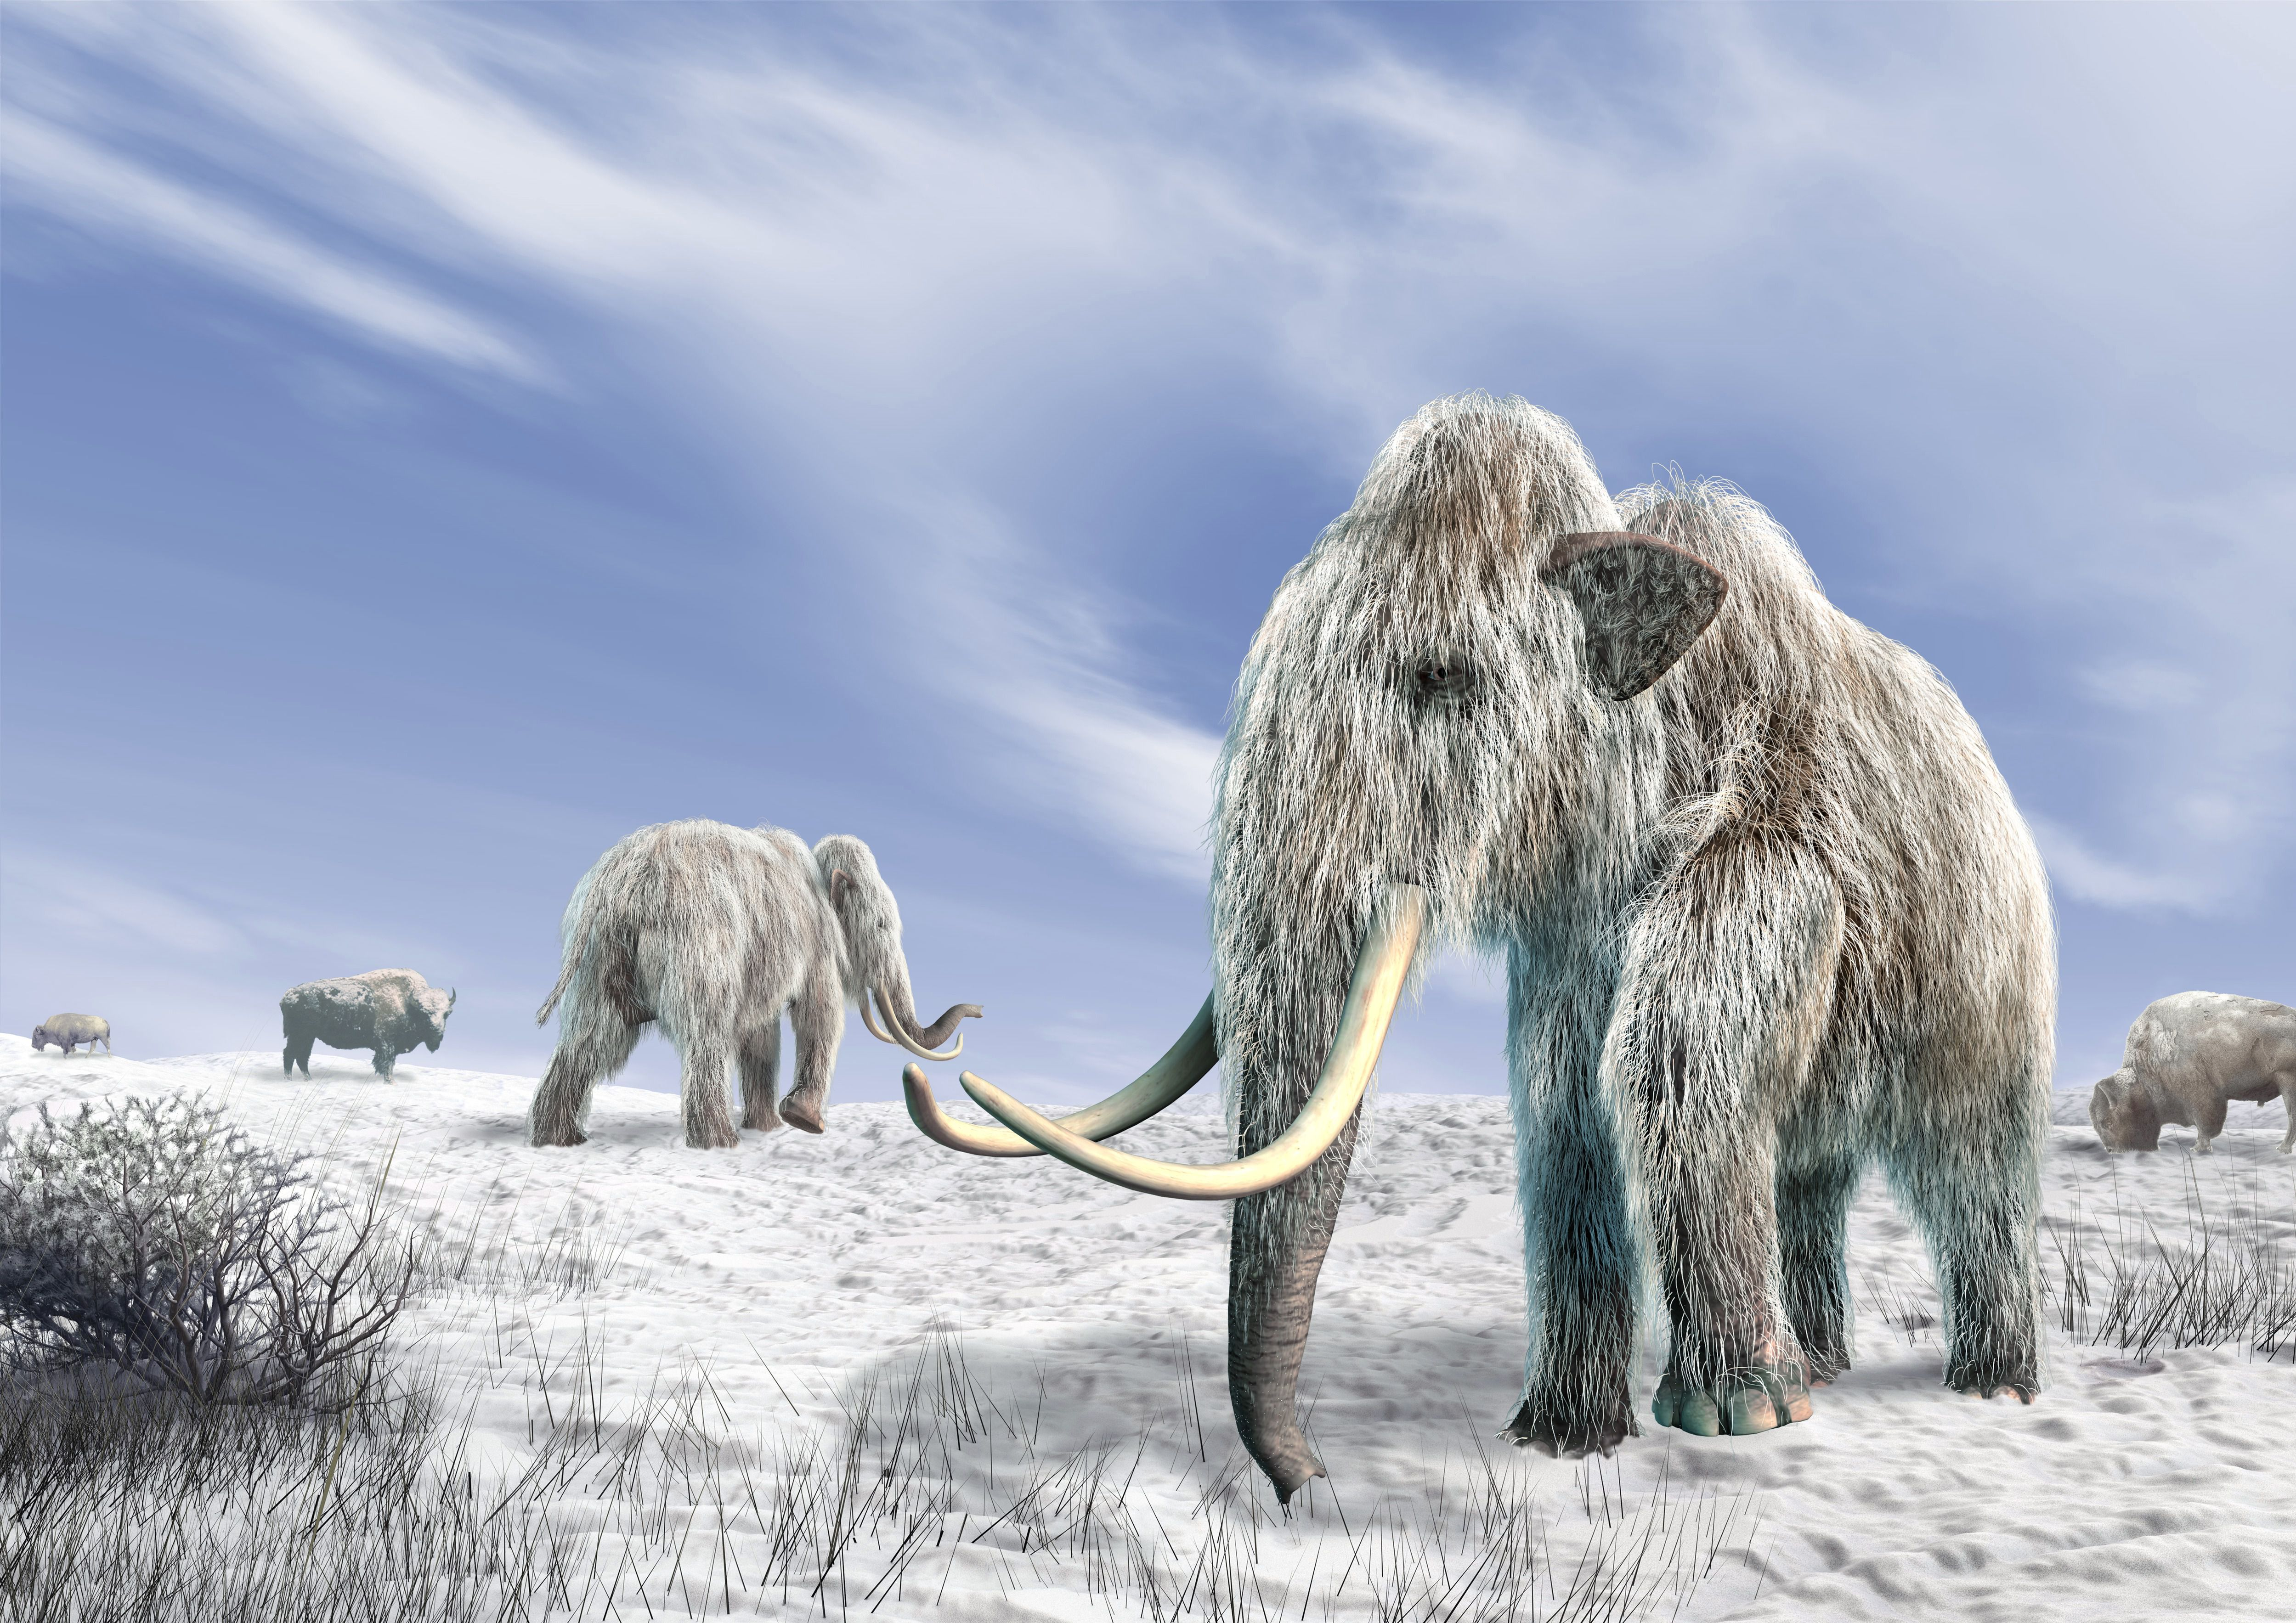 9 Wild Facts About the Woolly Mammoth